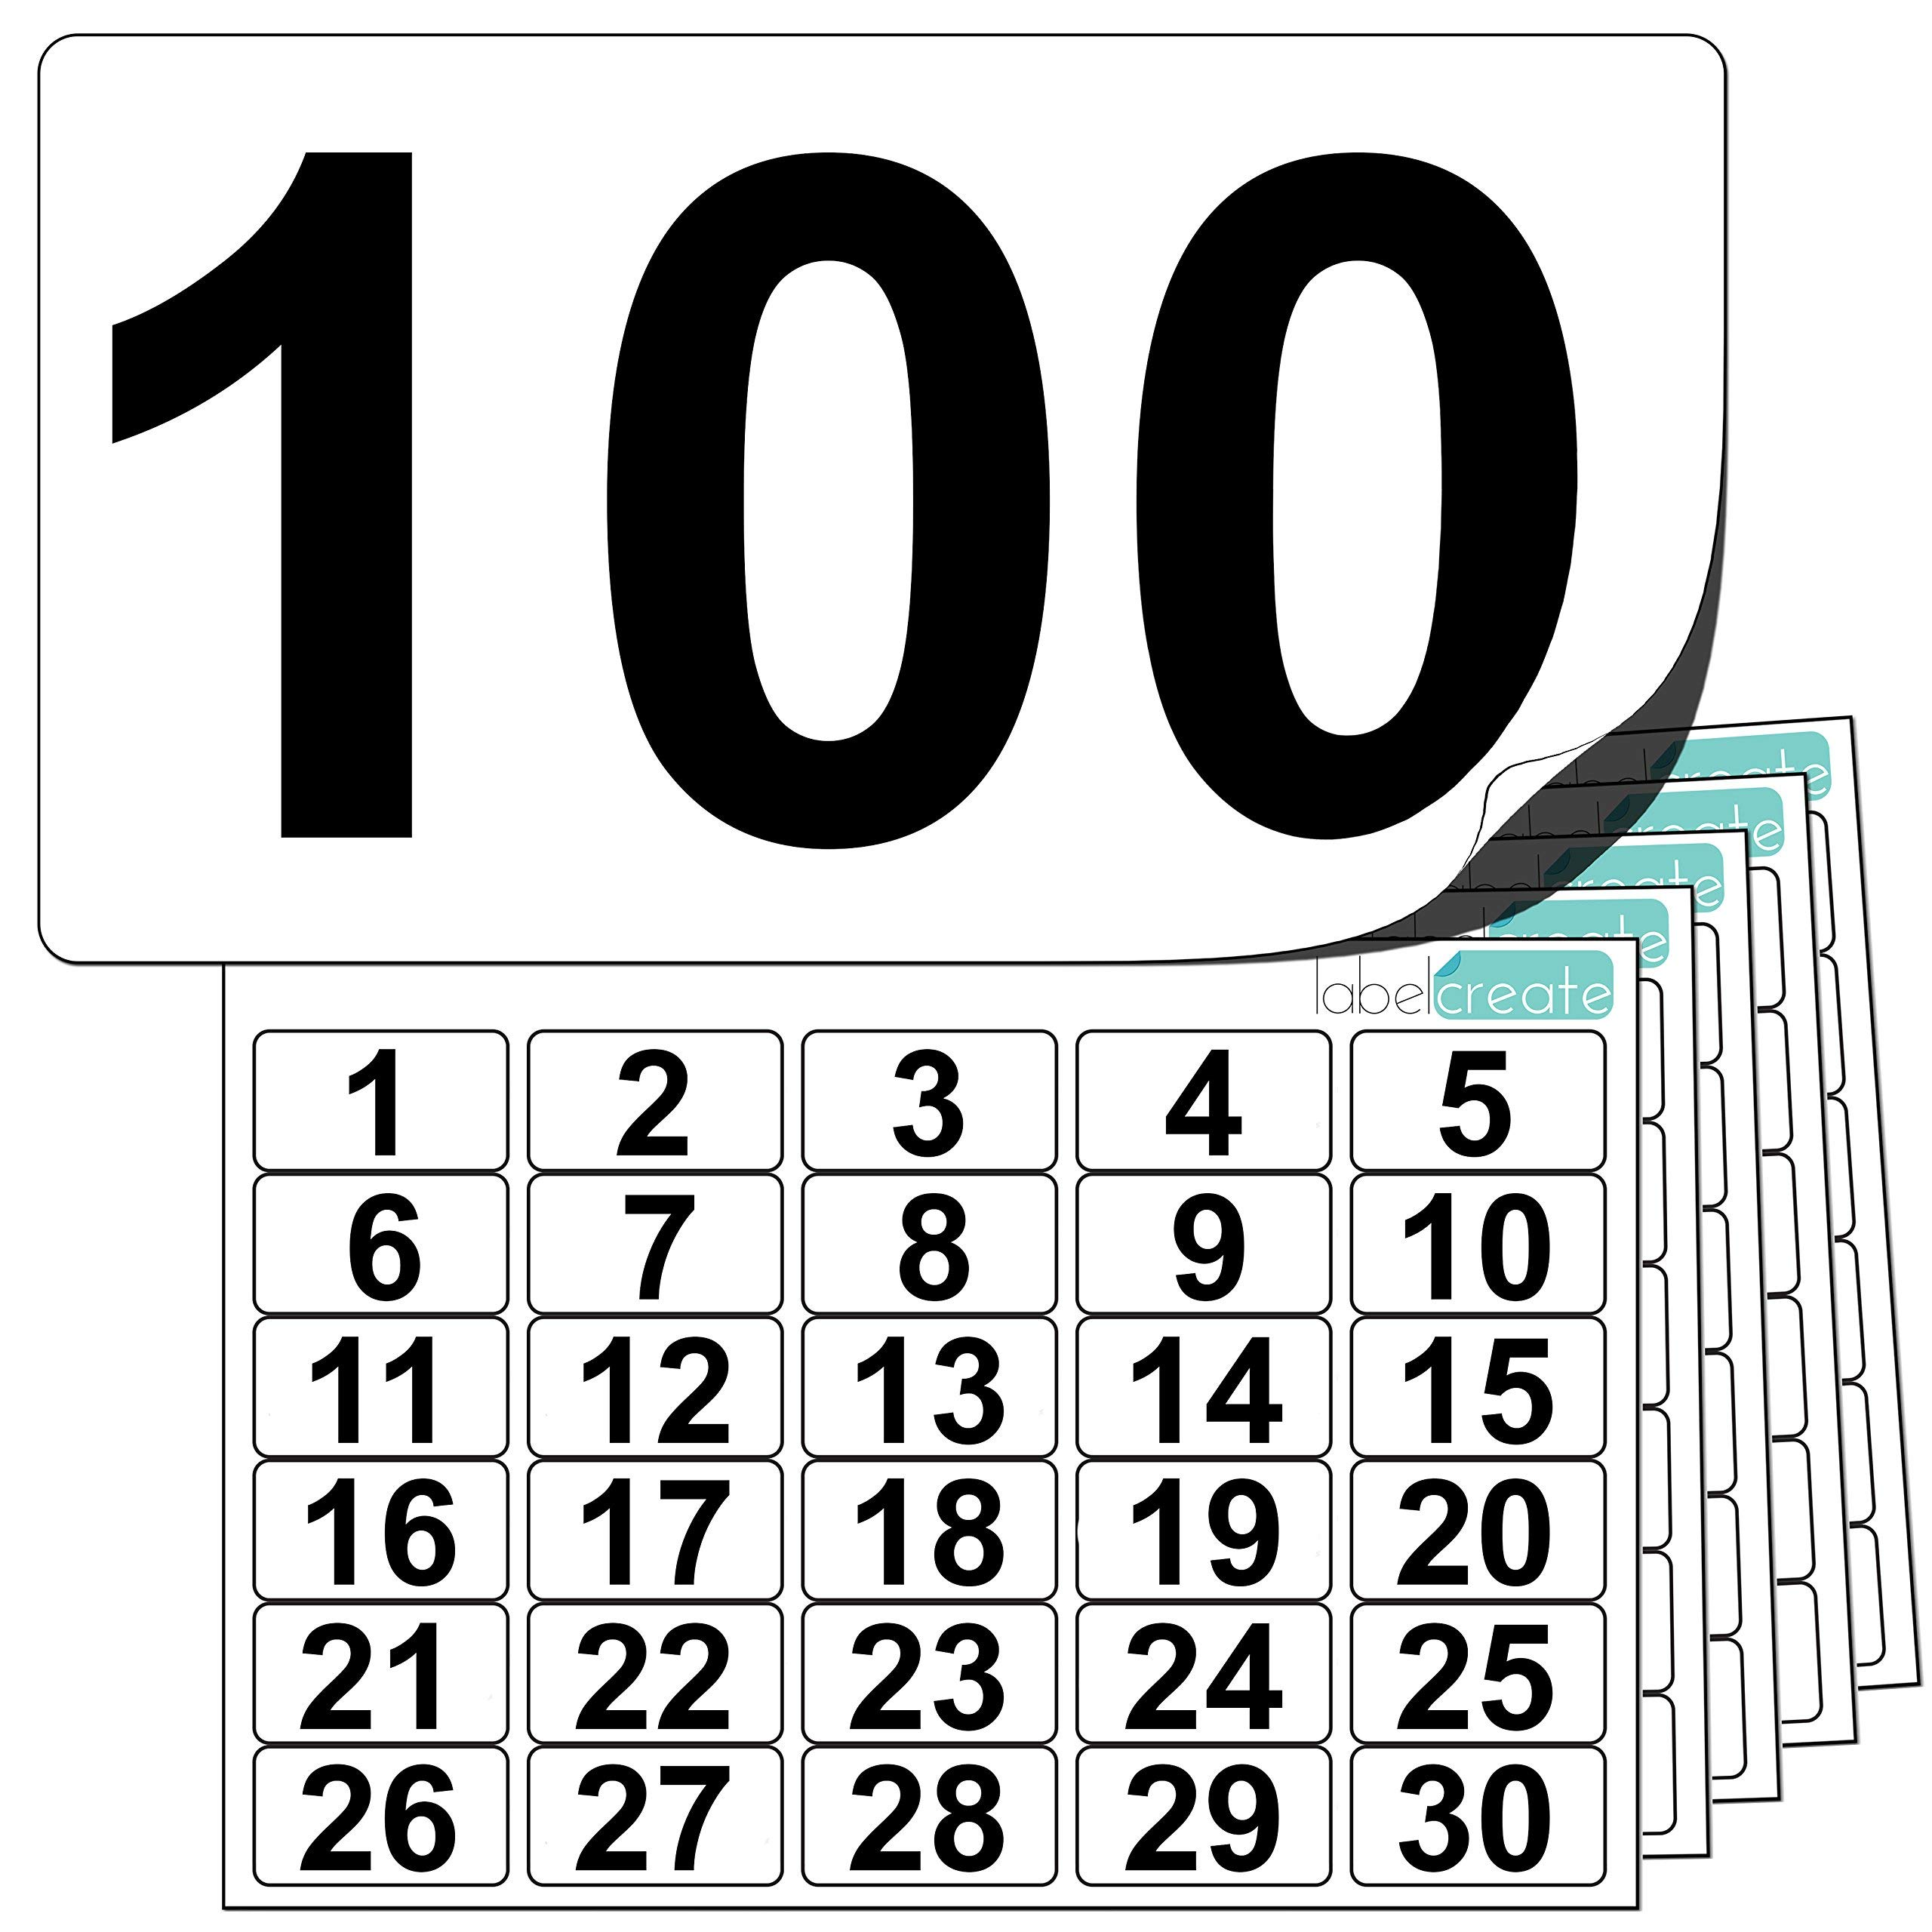 IVY SELF ADHESIVE LABELS 1-500 6 OF EACH NUMBER = 3000 LABELS